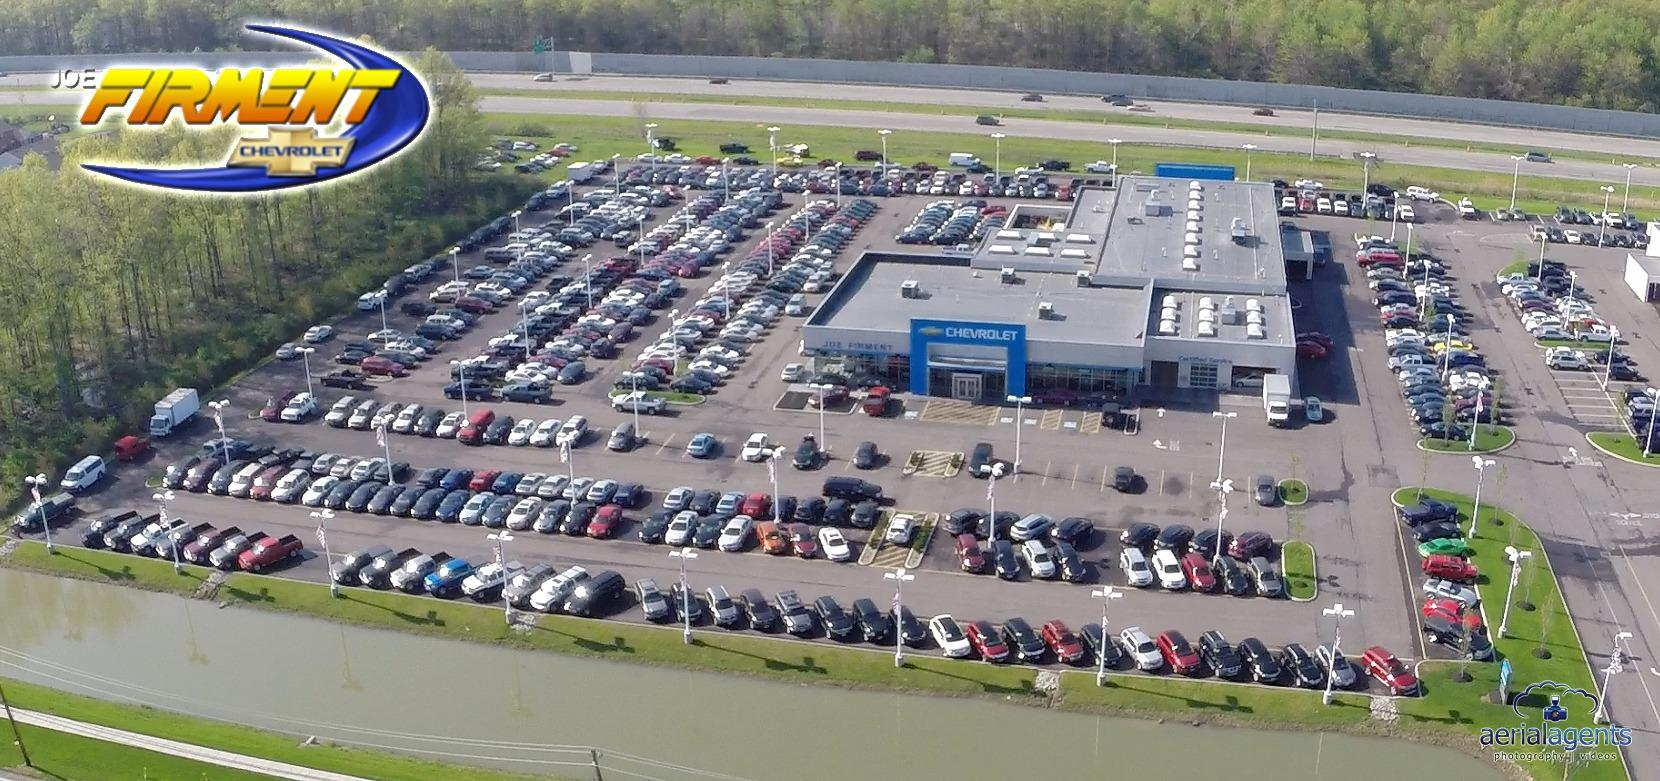 joe firment chevrolet inc in avon oh whitepages. Cars Review. Best American Auto & Cars Review